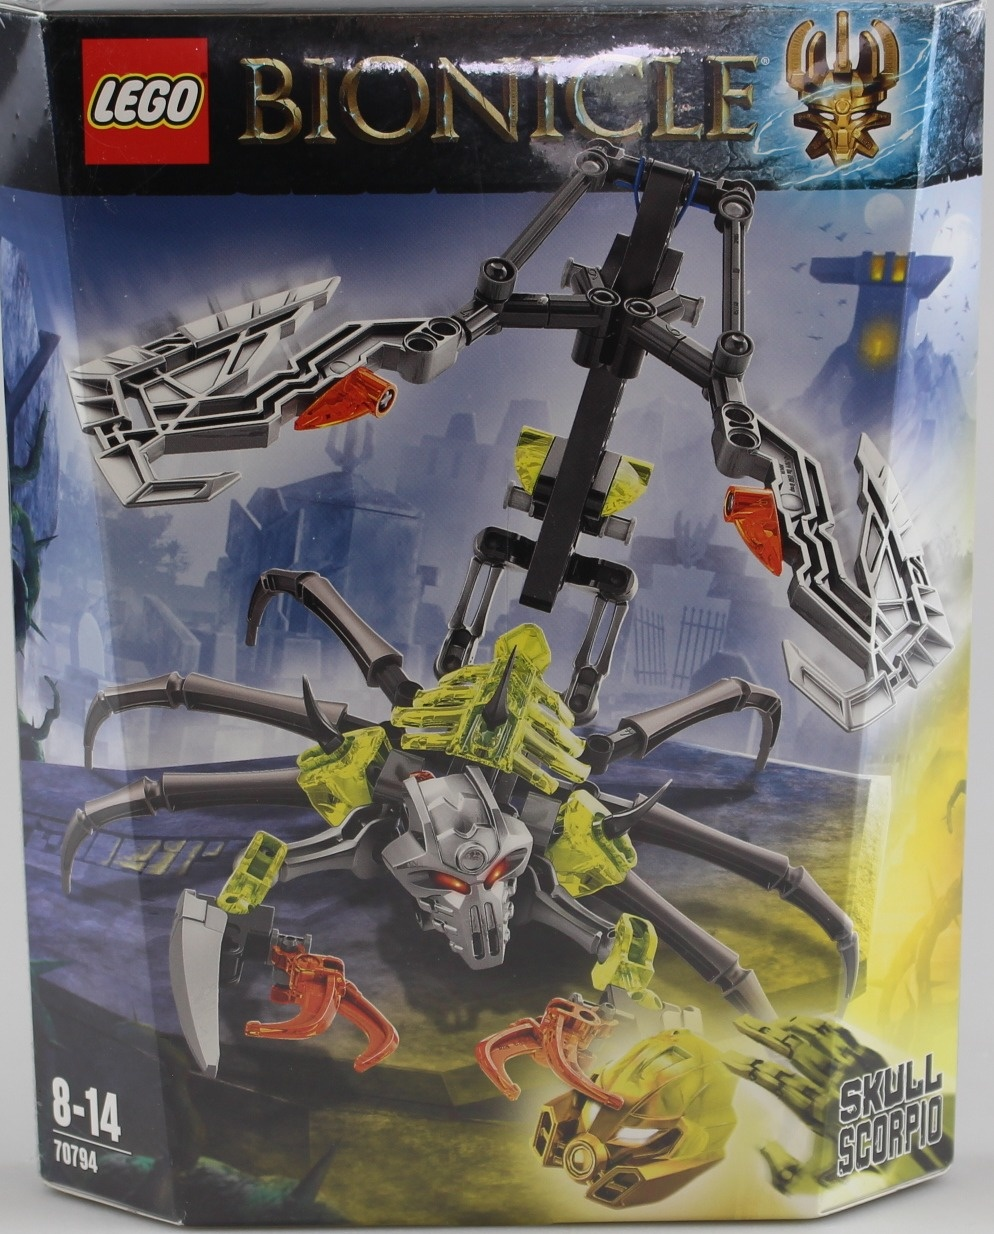 Lego Bionicle 70794 Skull Scorpio Action Figure By Shop Online For Toys In Australia